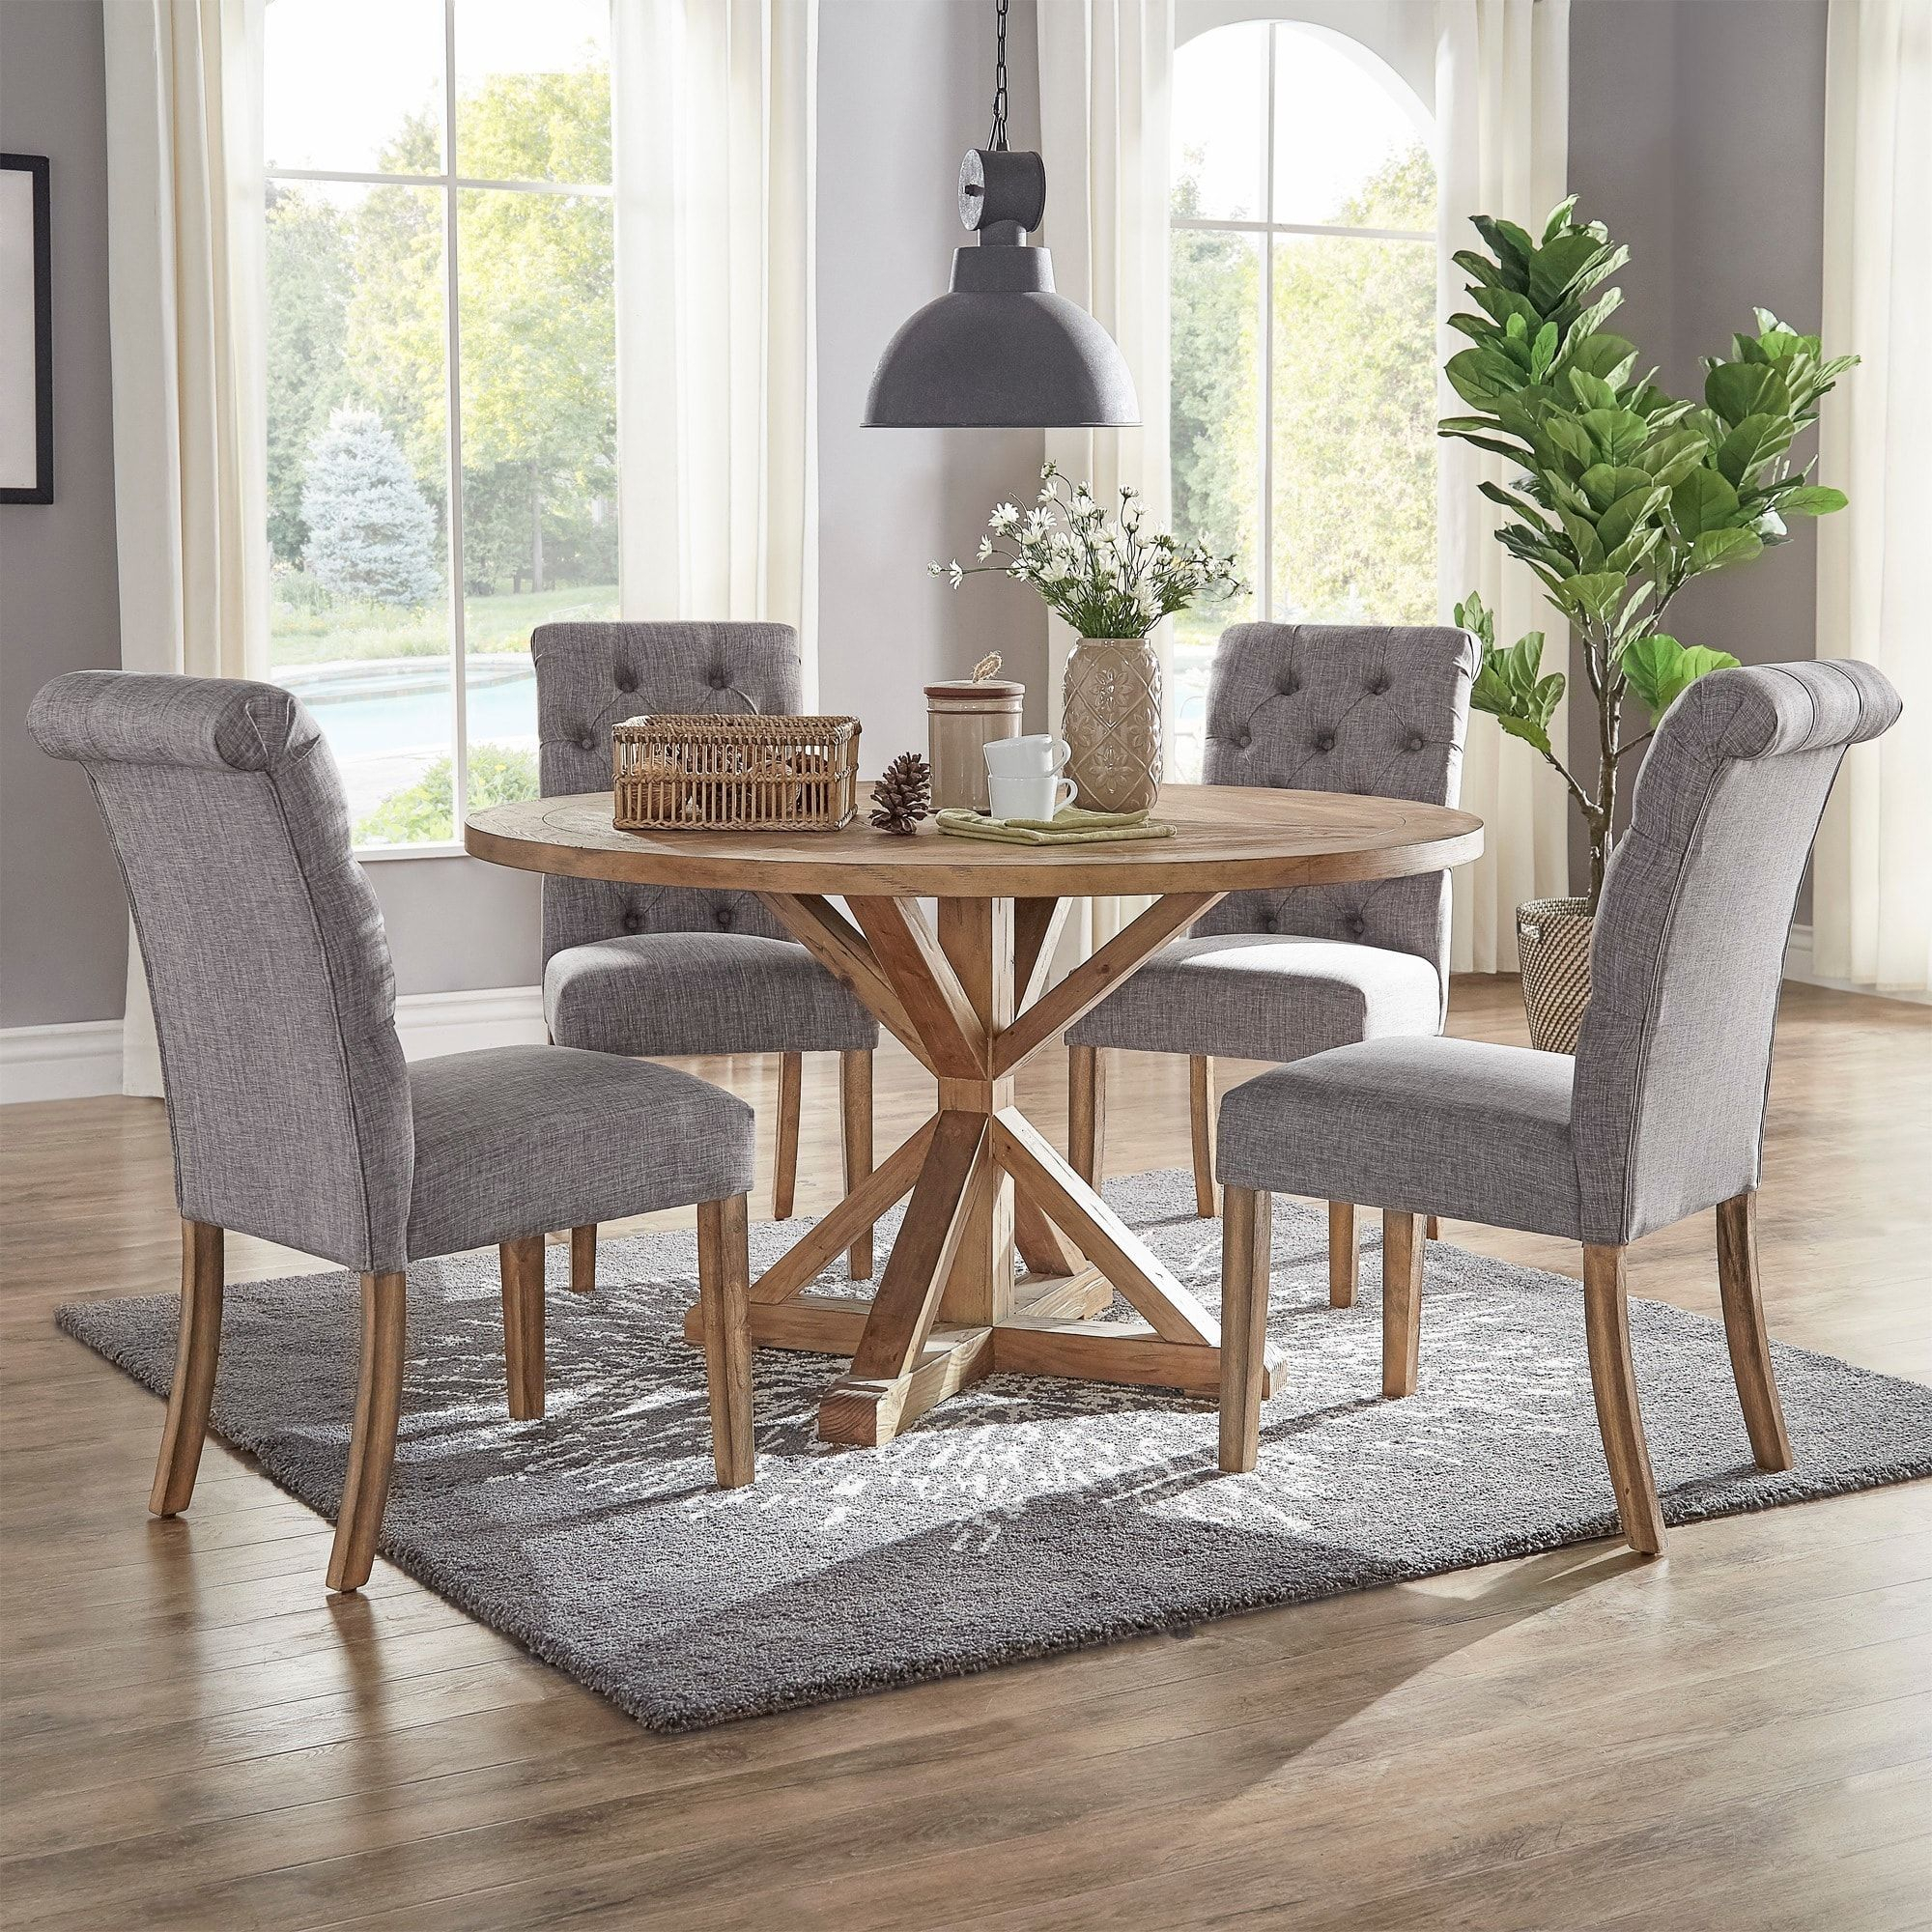 Benchwright Rustic X Base 48 Inch Round Dining Table Set Regarding 2017 Benchwright Round Pedestal Dining Tables (View 4 of 25)